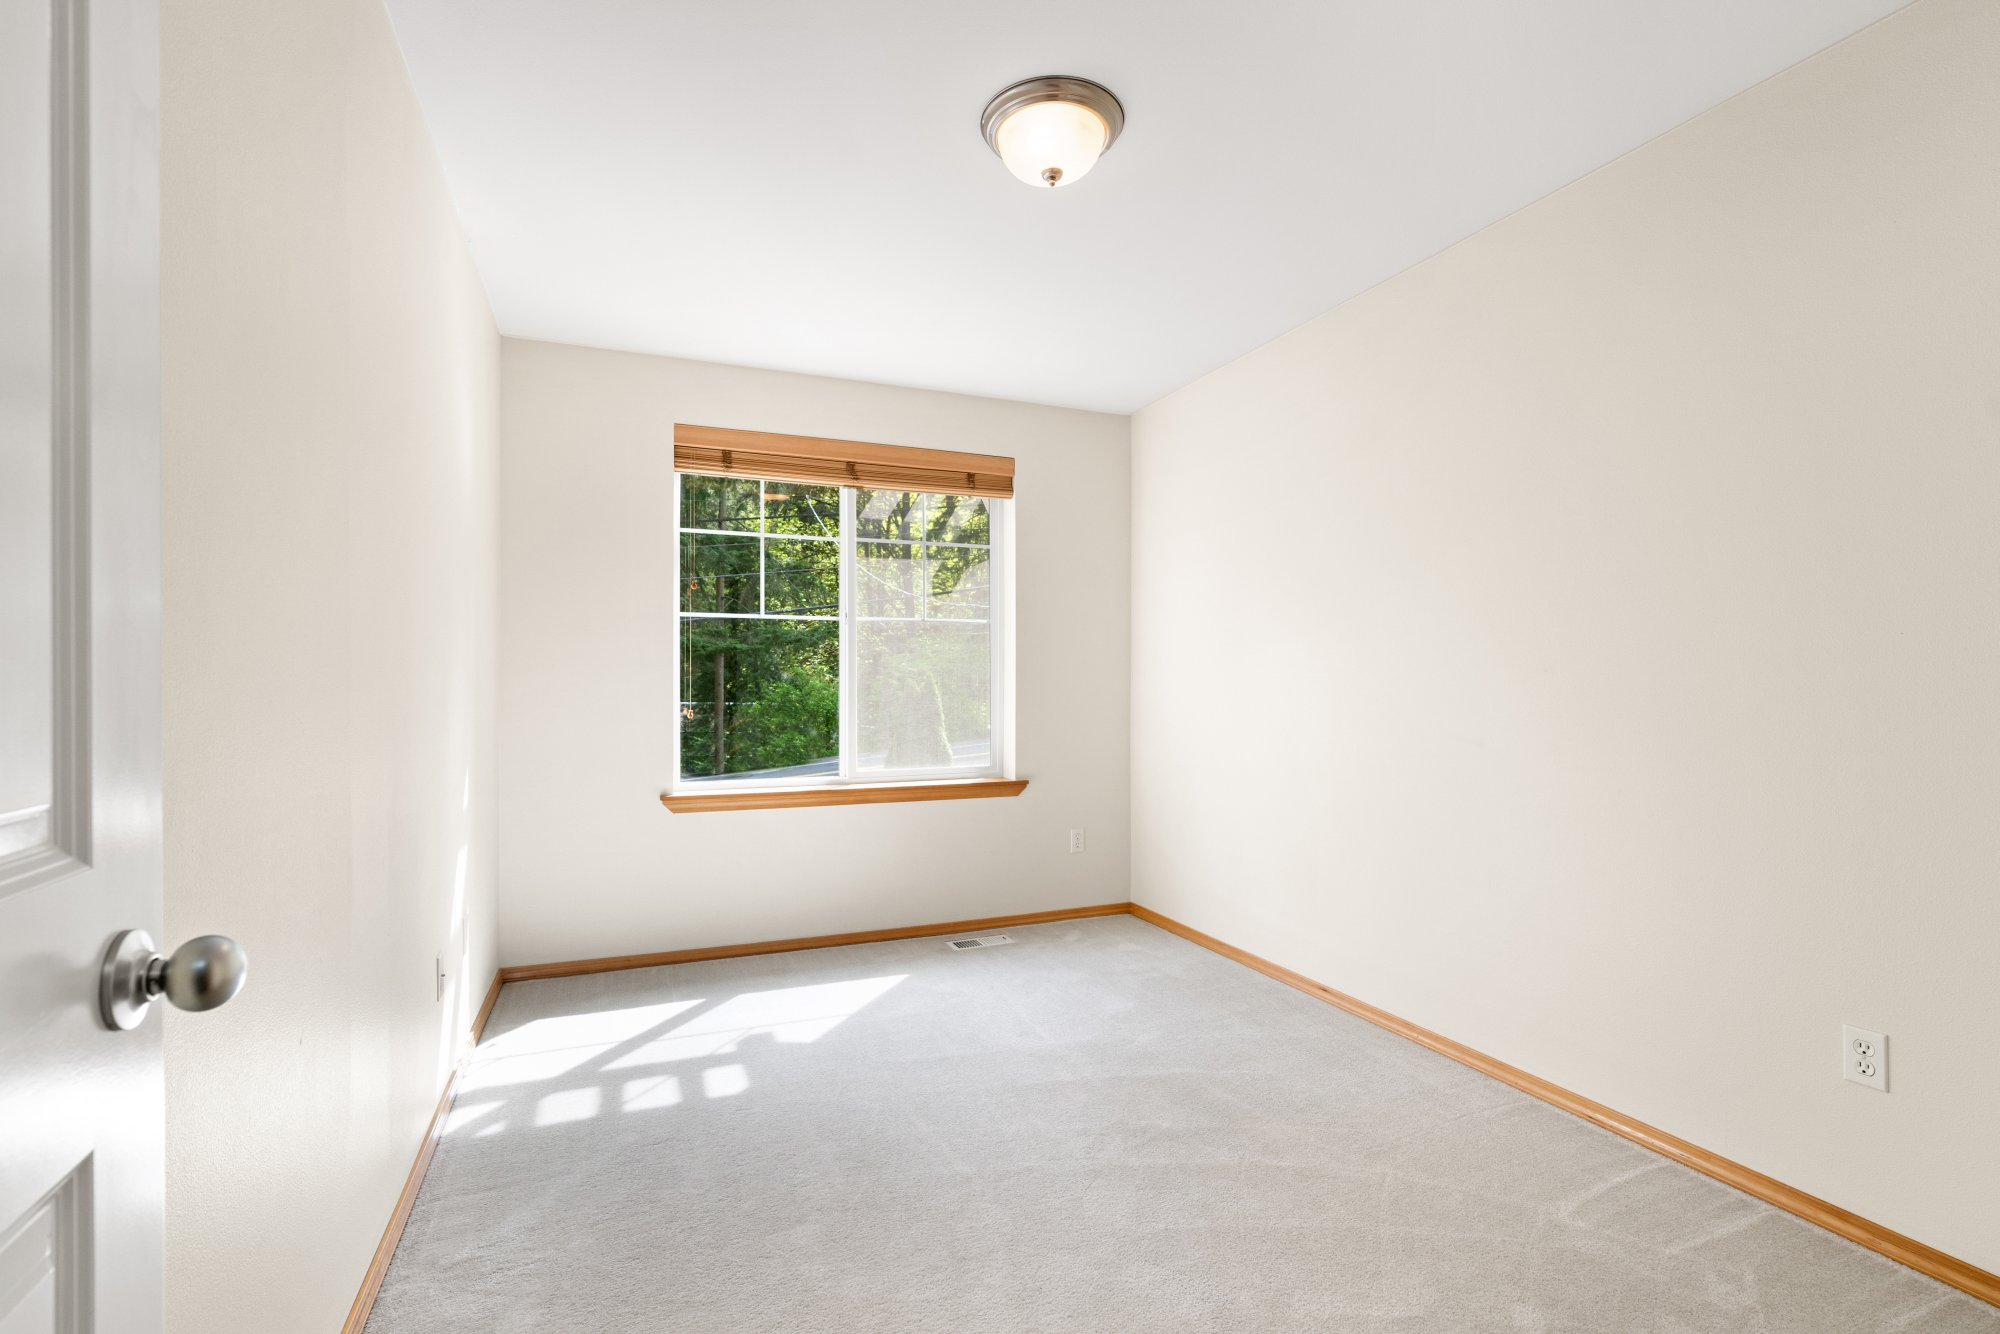 030-2946Northeast178thStreet-LakeForestPark-WA-98155-SMALL